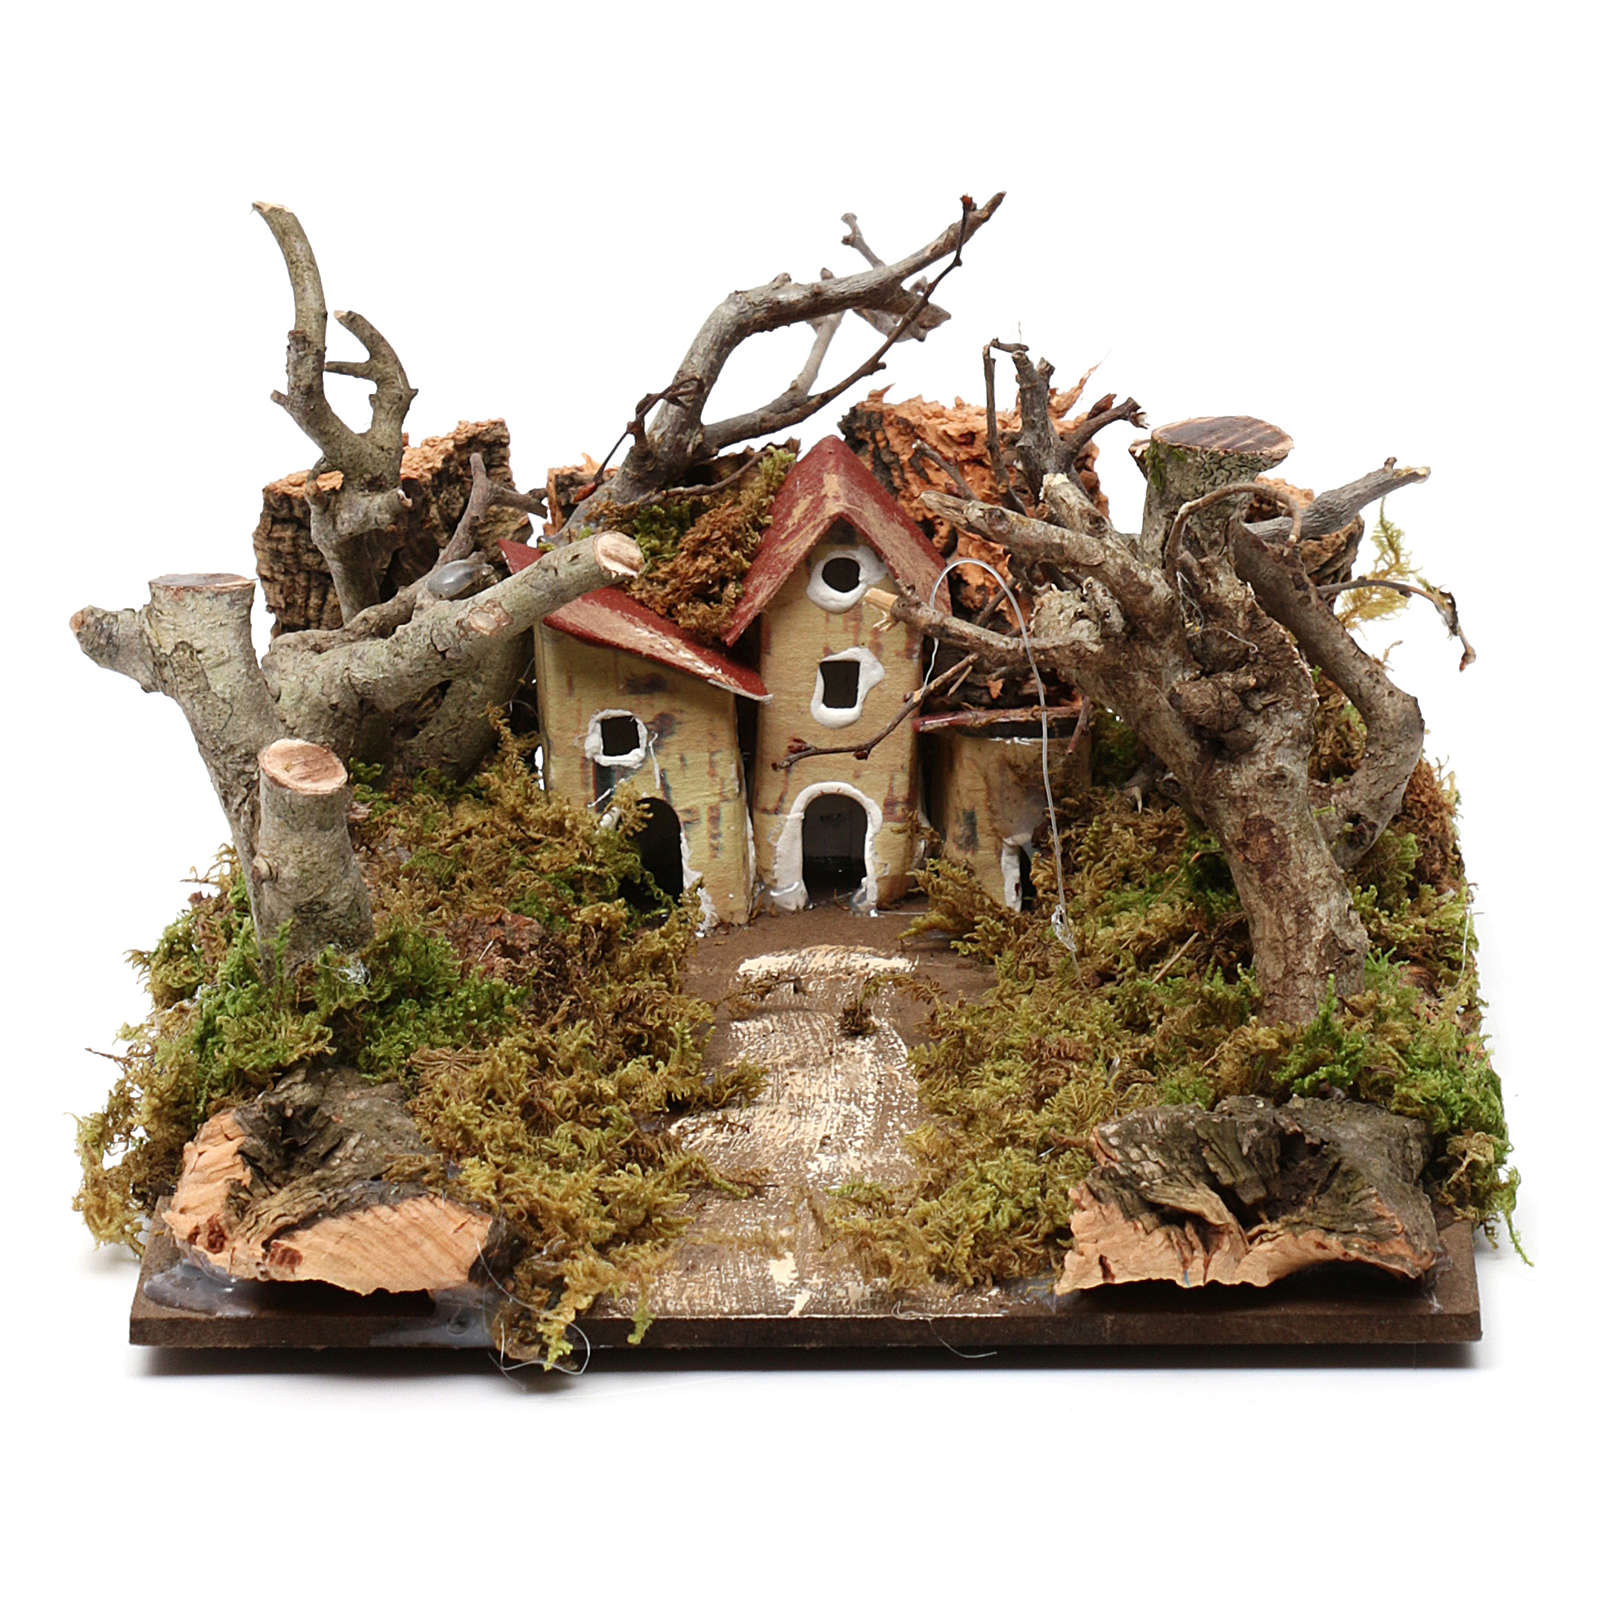 Nativity scene setting with houses and trees 5x20x15 cm 4